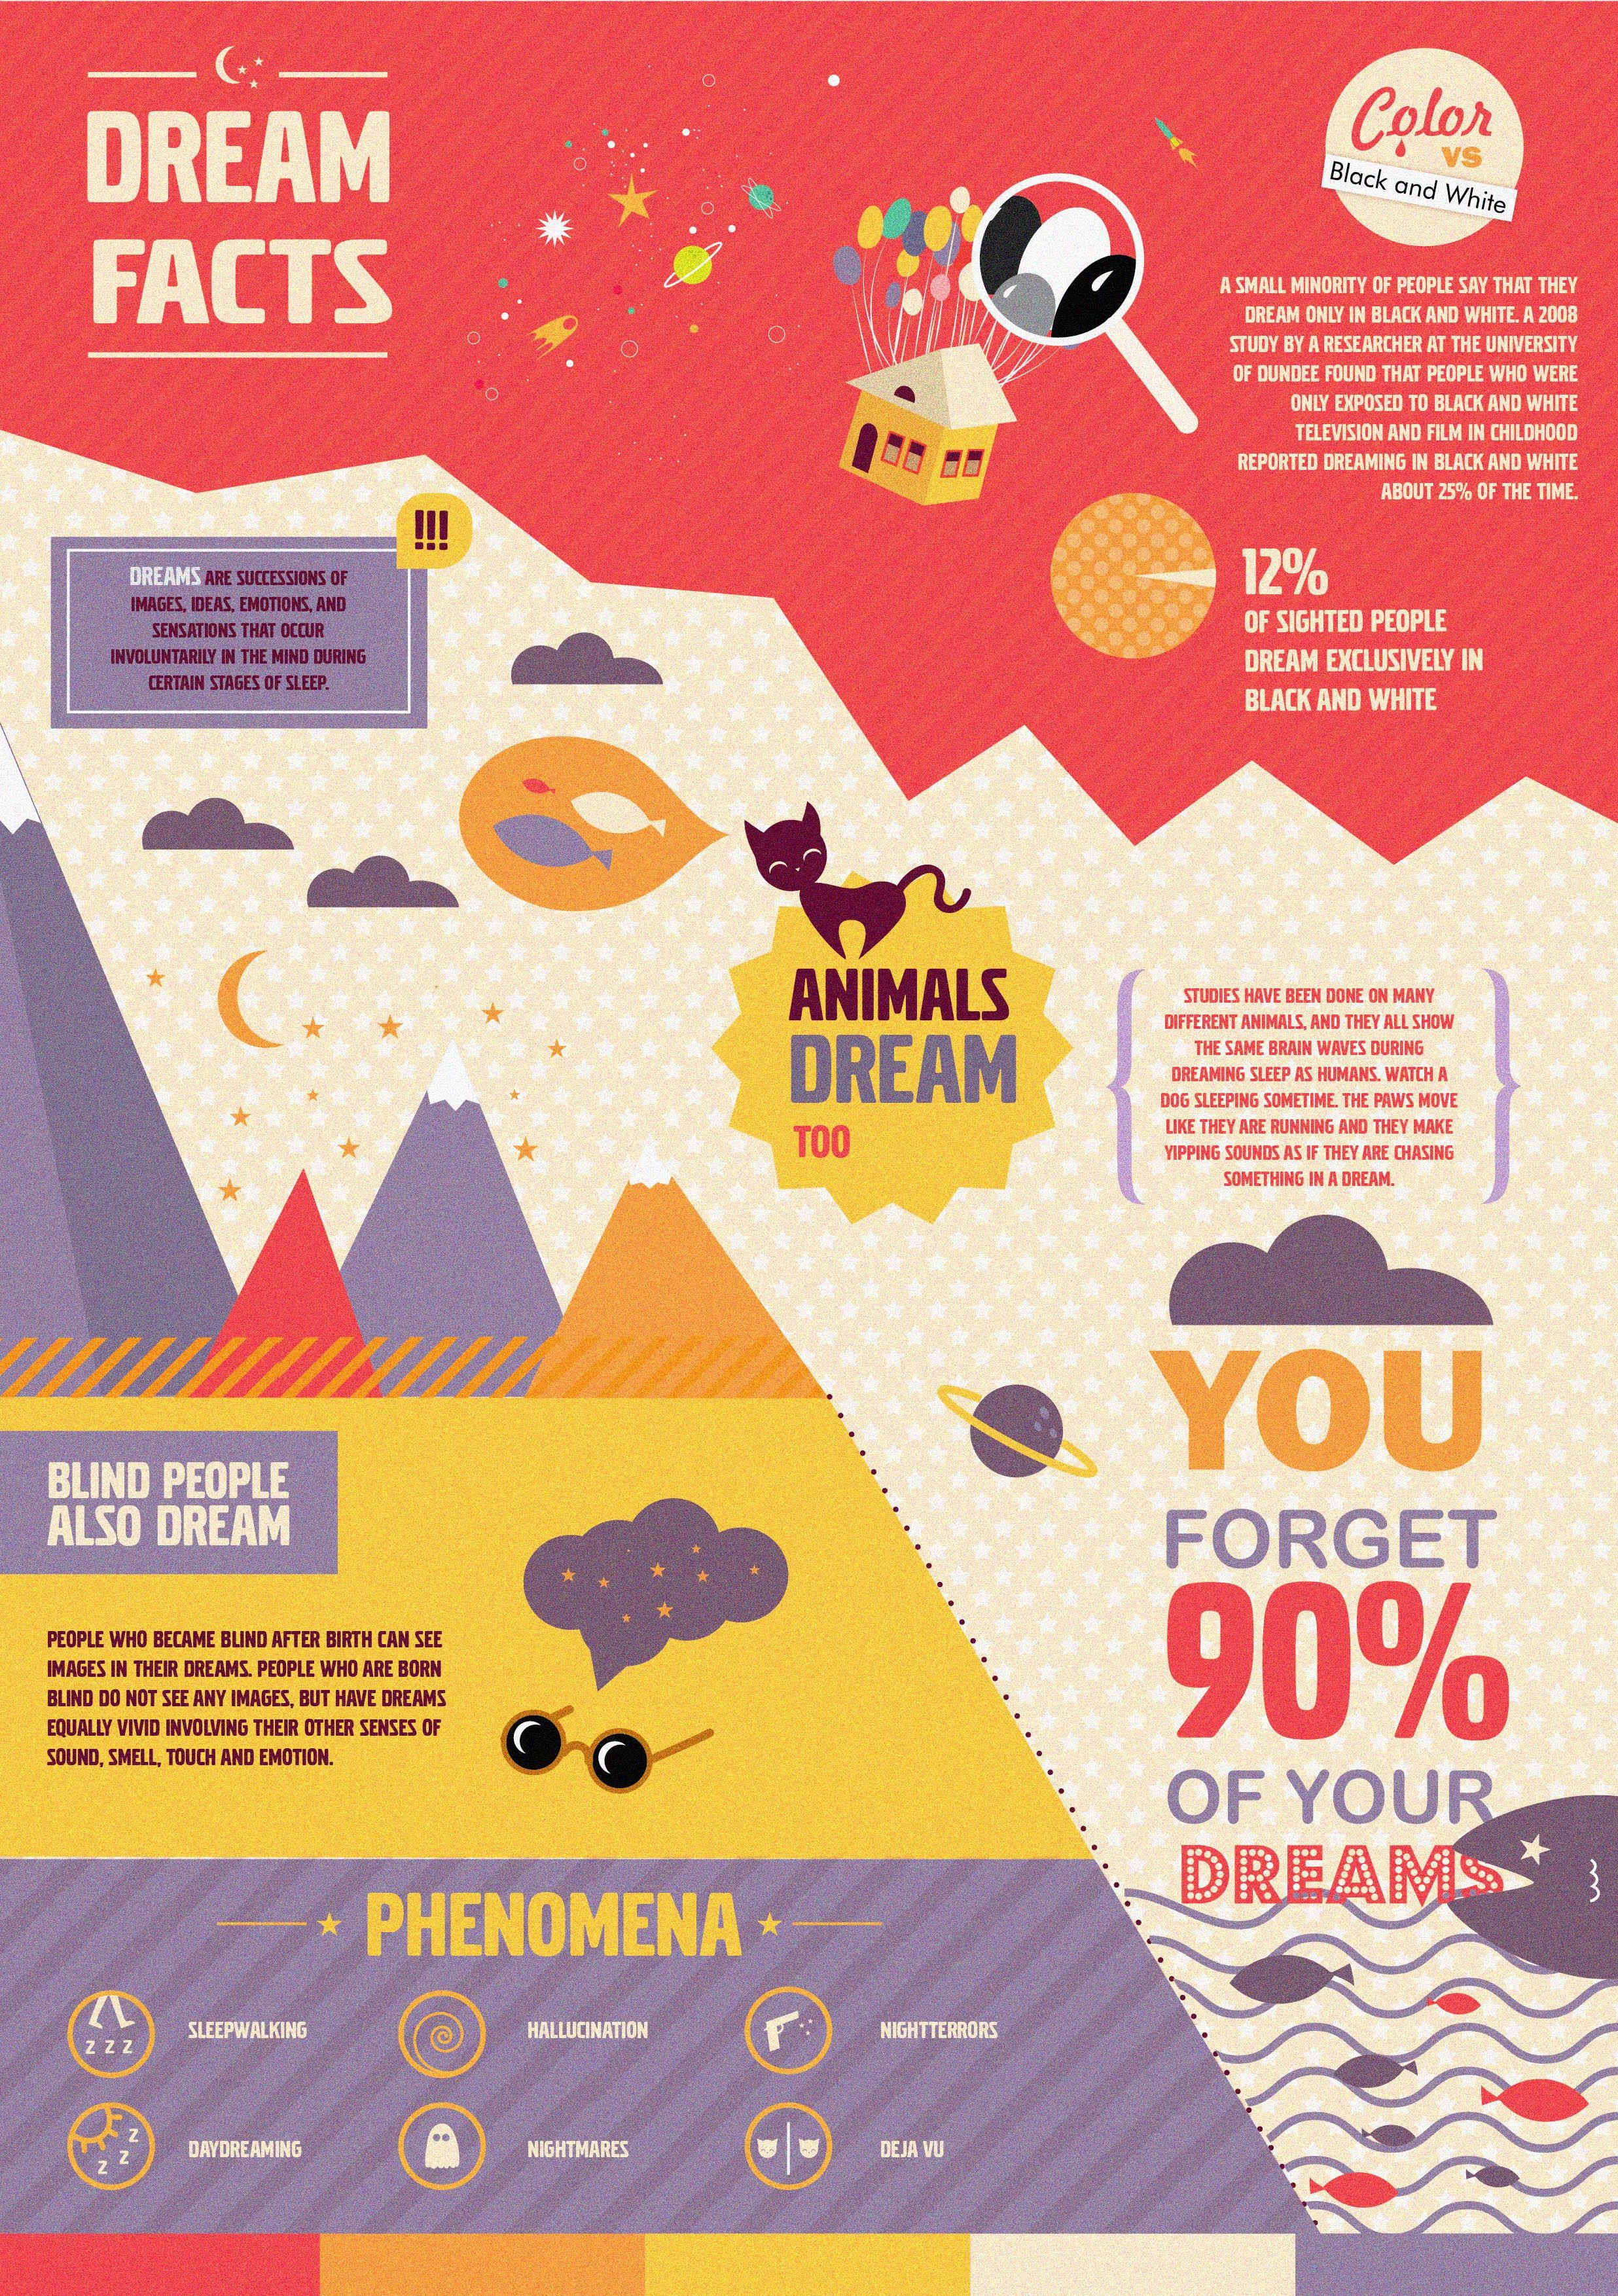 Pin By Iryna Korshak On My Style Facts About Dreams Dream Psychology What Are Dreams